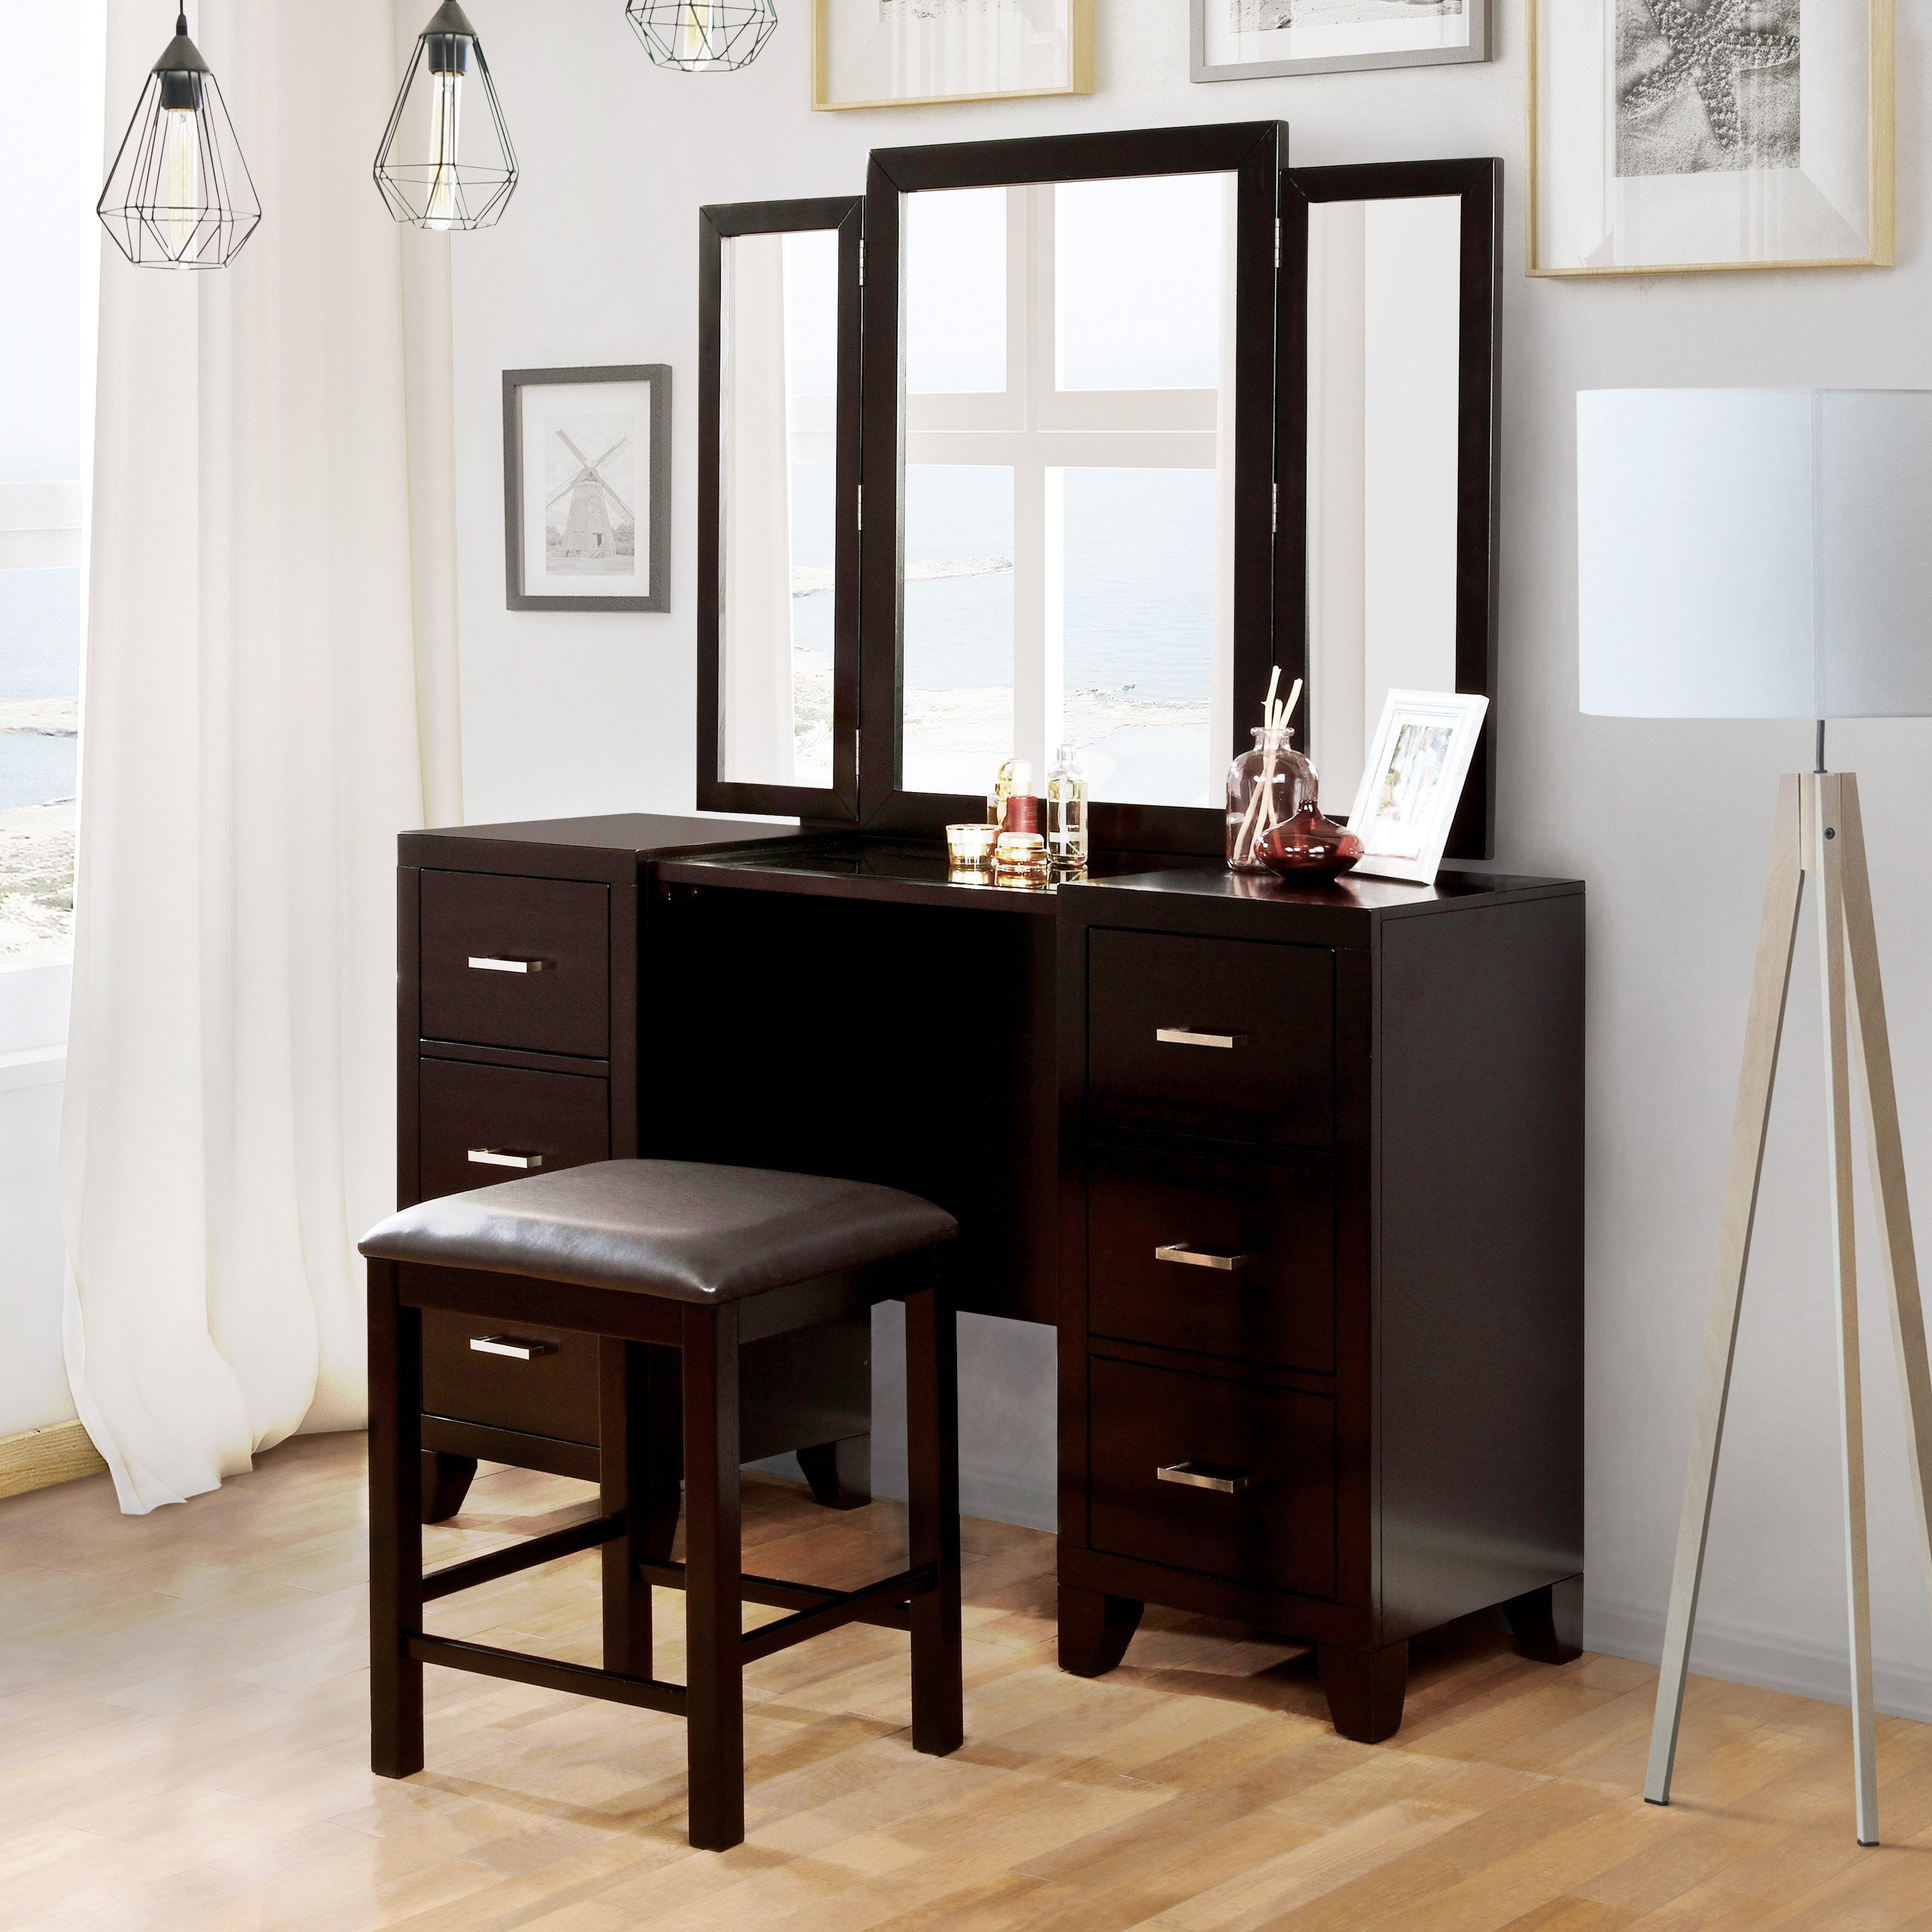 cabinet of impressive outstanding lights stool light table mirrors storage vanity mirror bulbs luxury around makeup set small with ikea it lighted diy